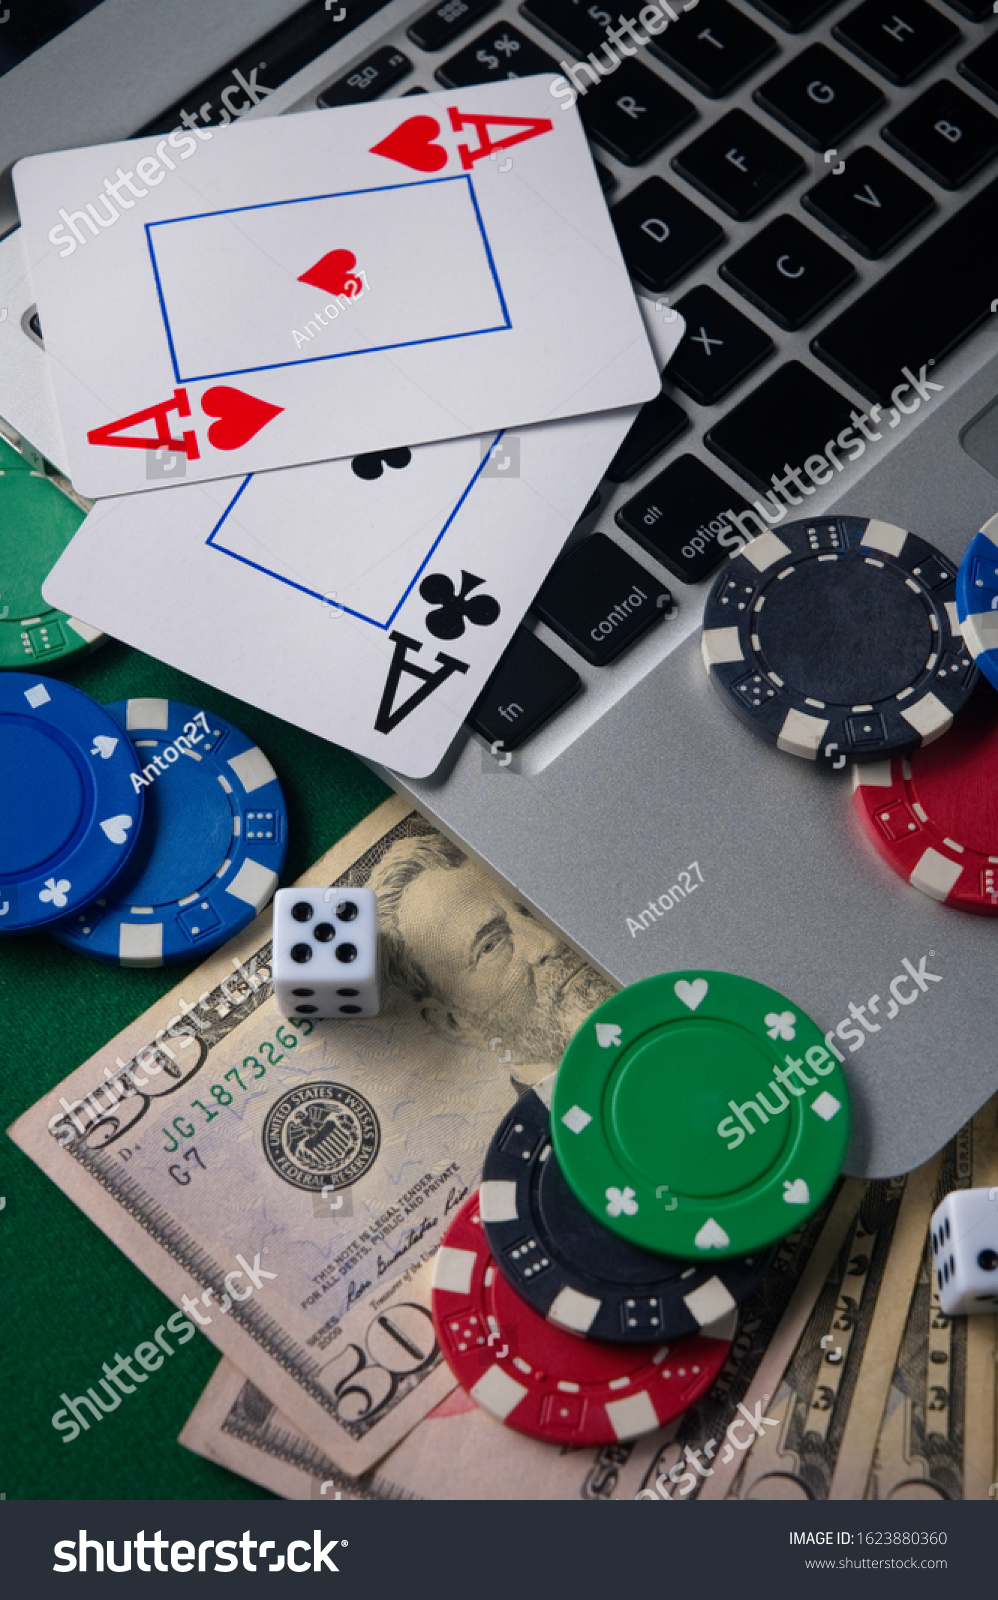 business services gambling